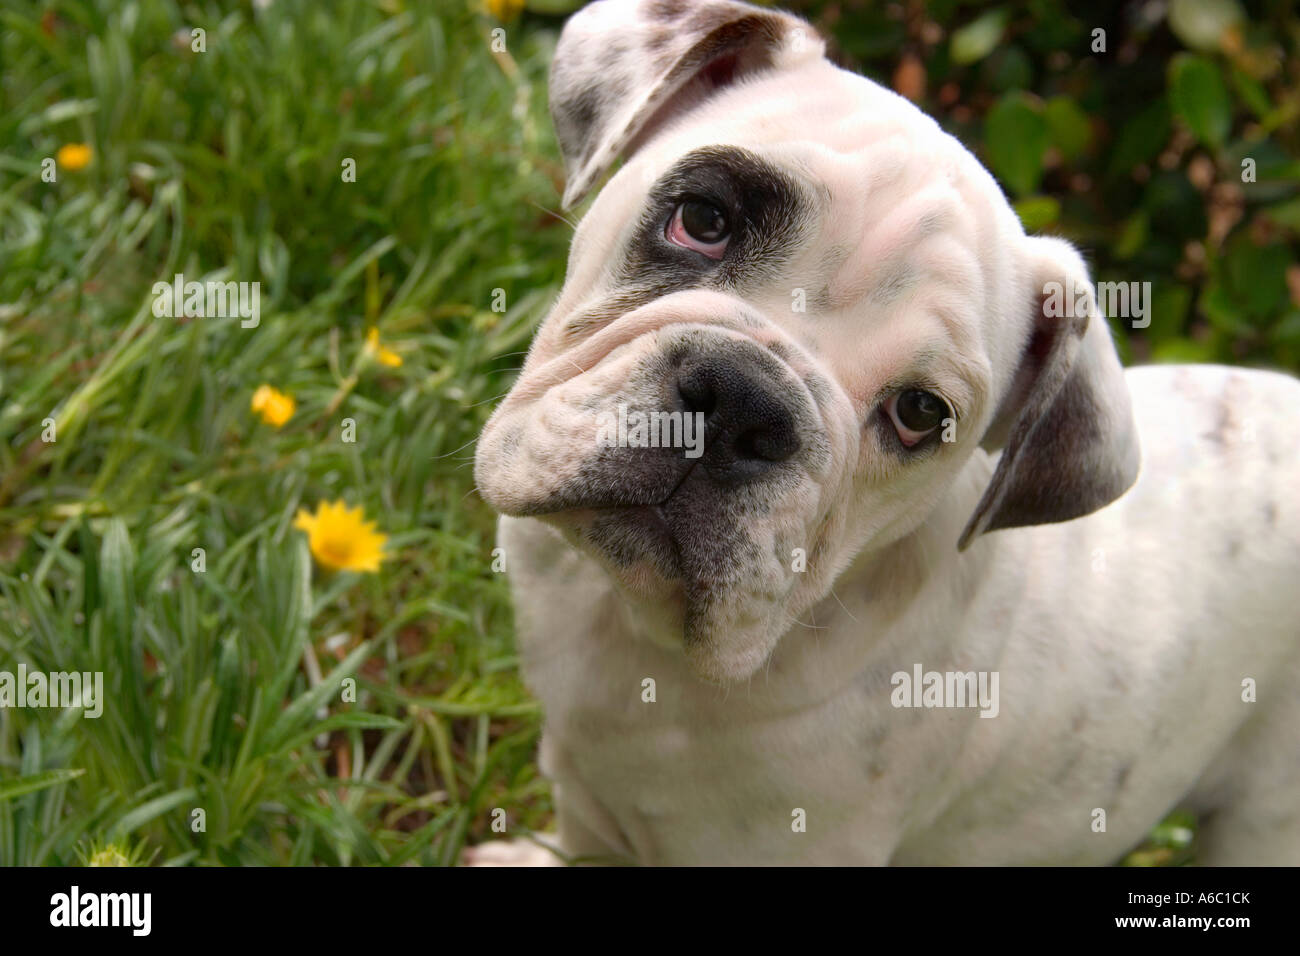 A loveable bull dog puppy looks at the camera with head cocked to one side. - Stock Image